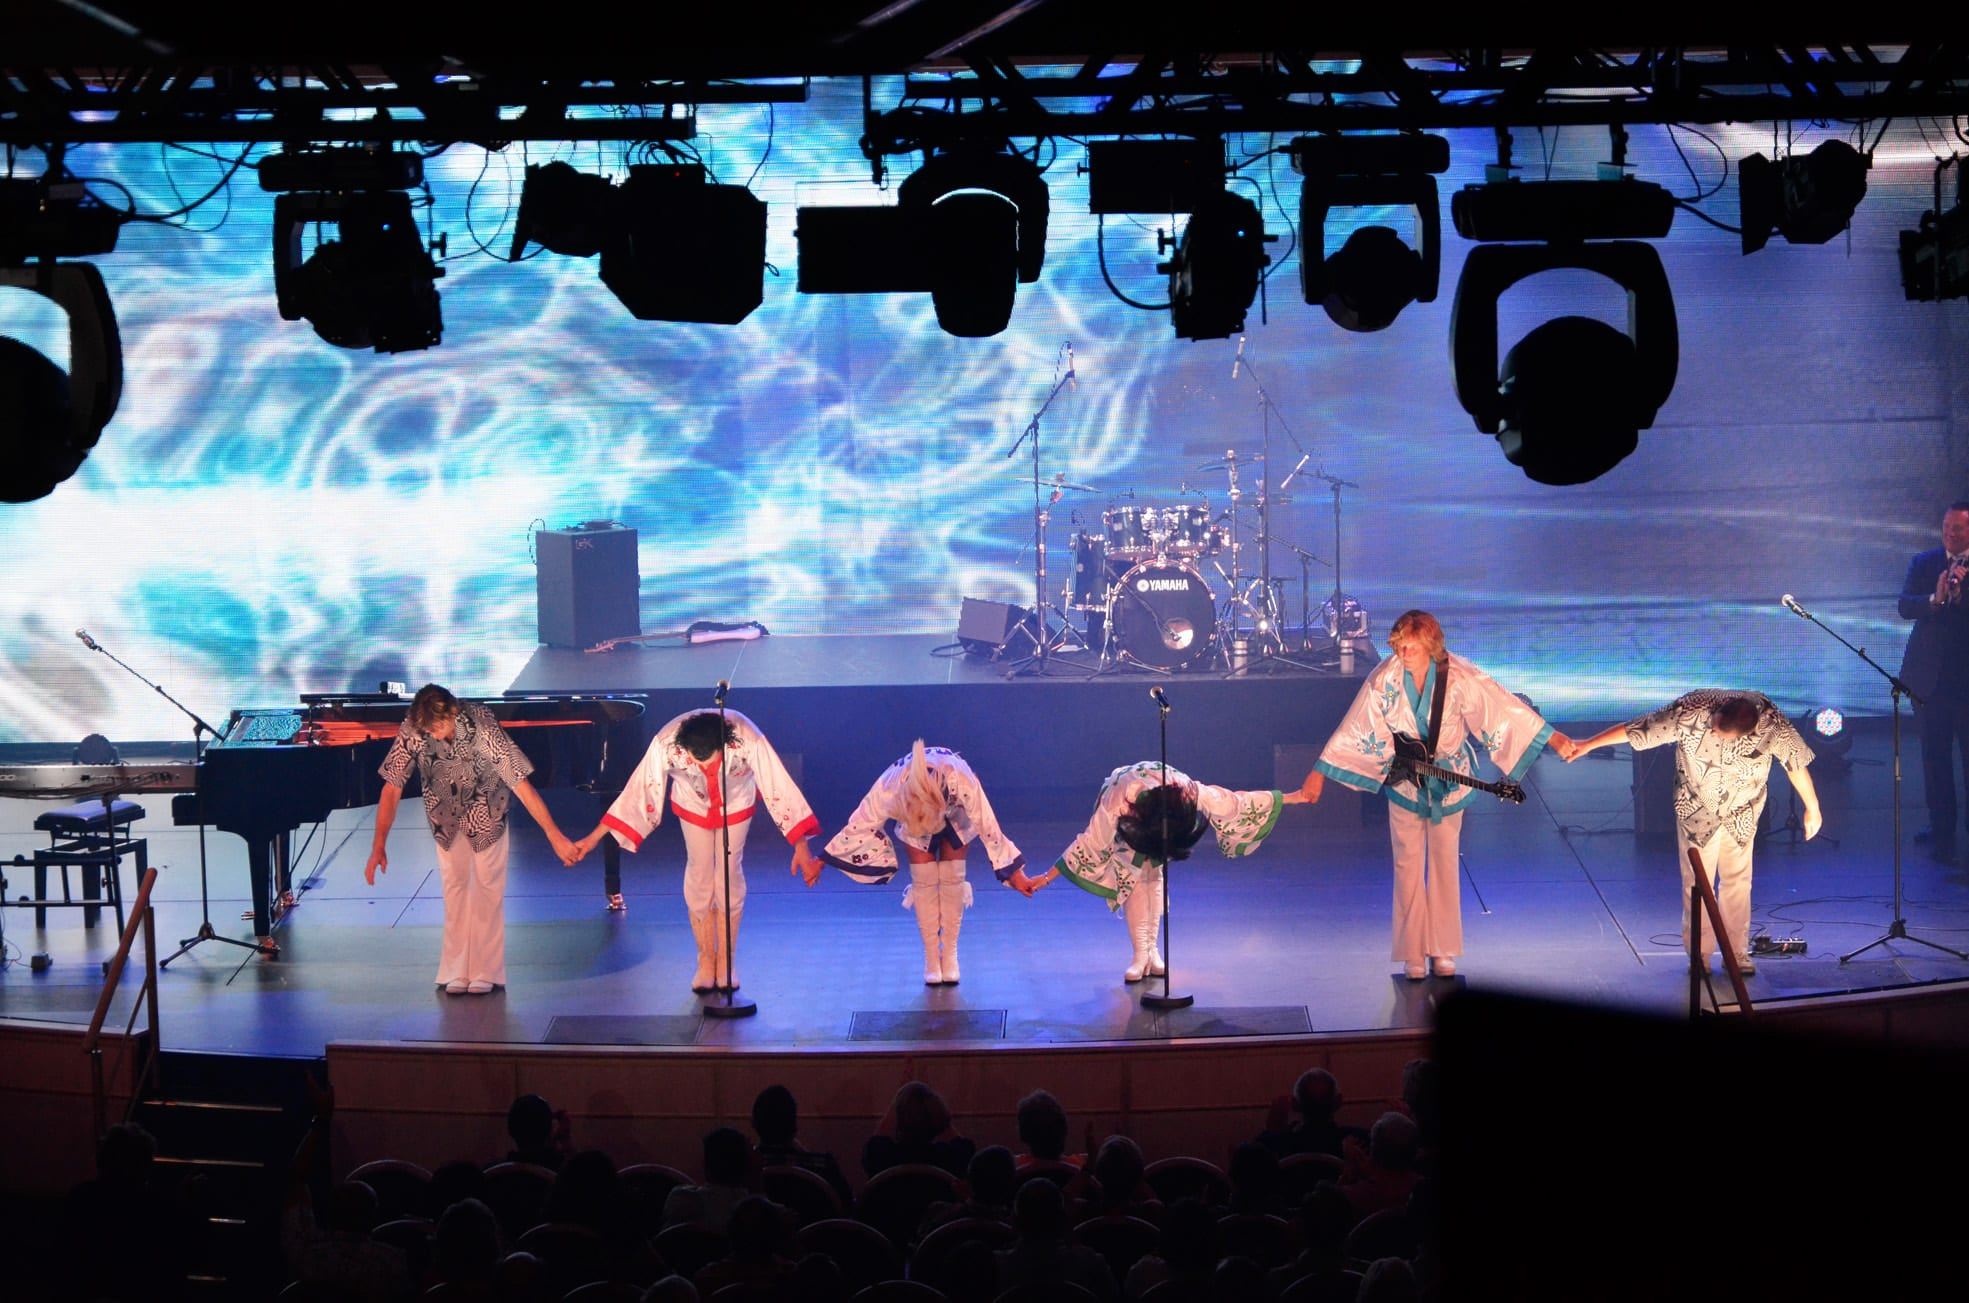 'Arrival' on the Royal Princess taking a bow at the end of the show